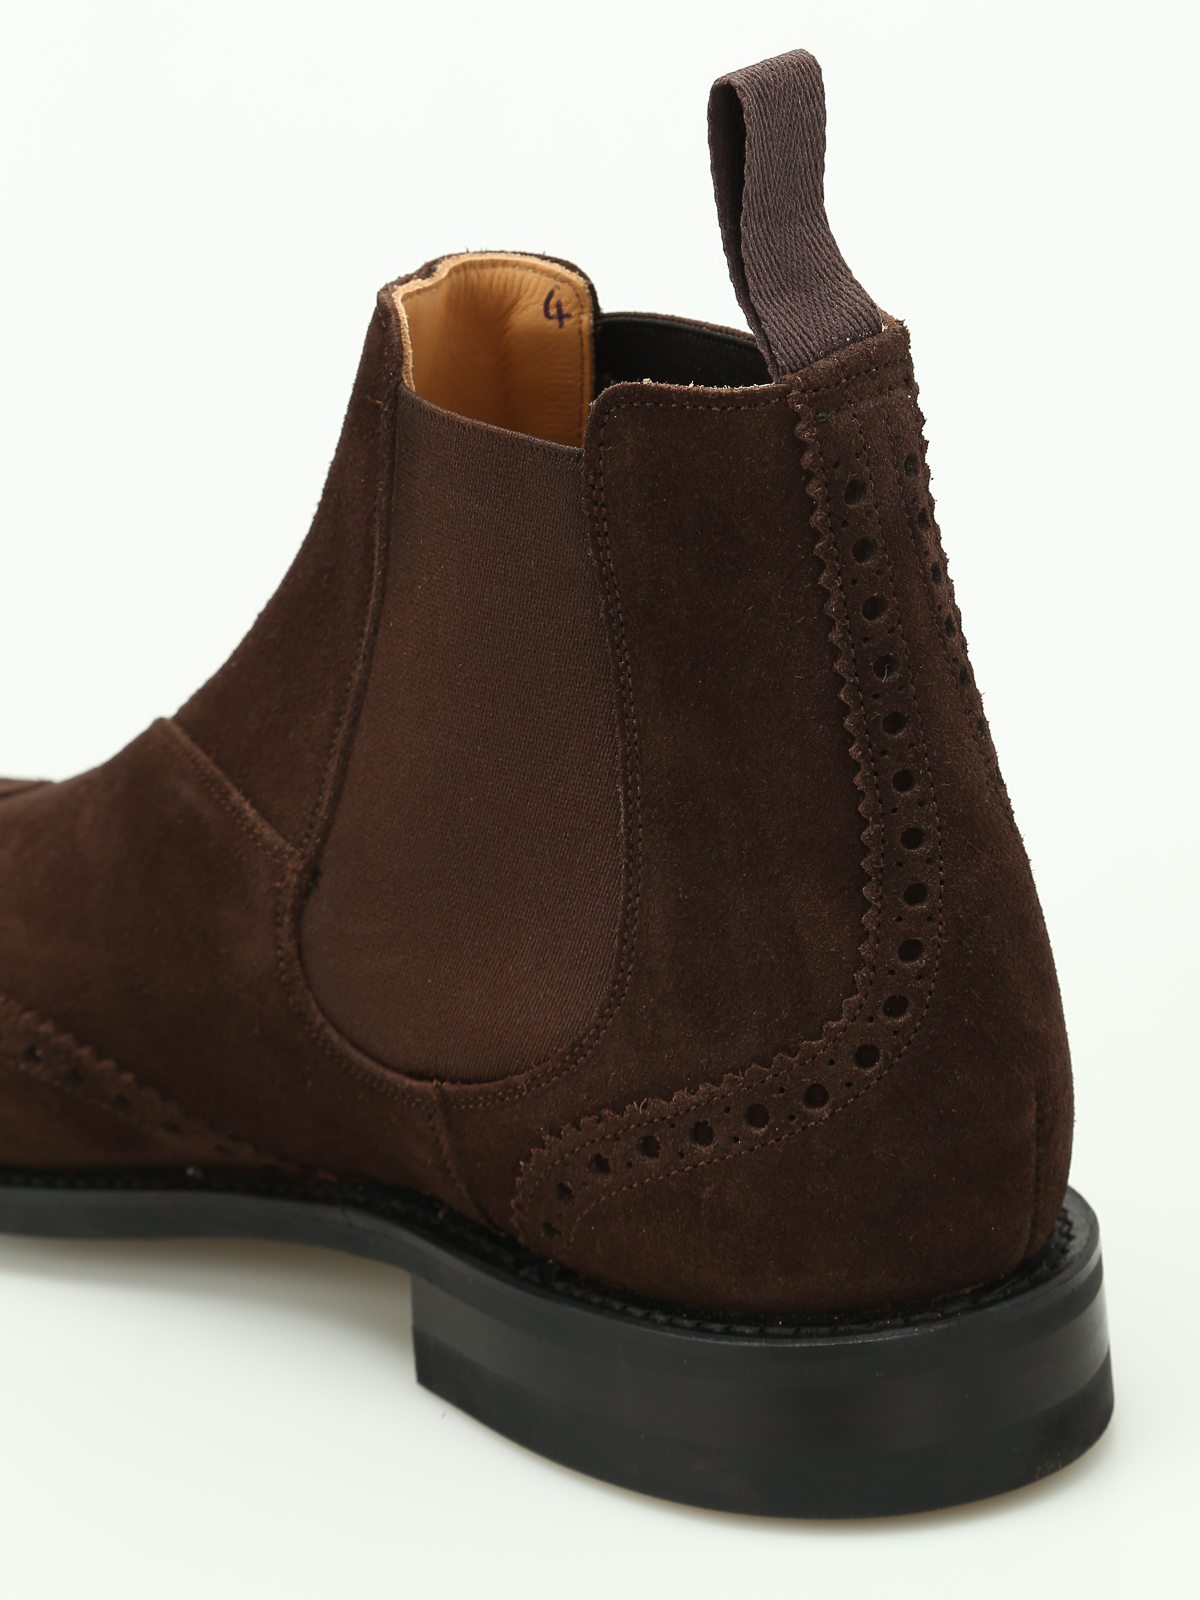 Ravenfield suede Chelsea boots